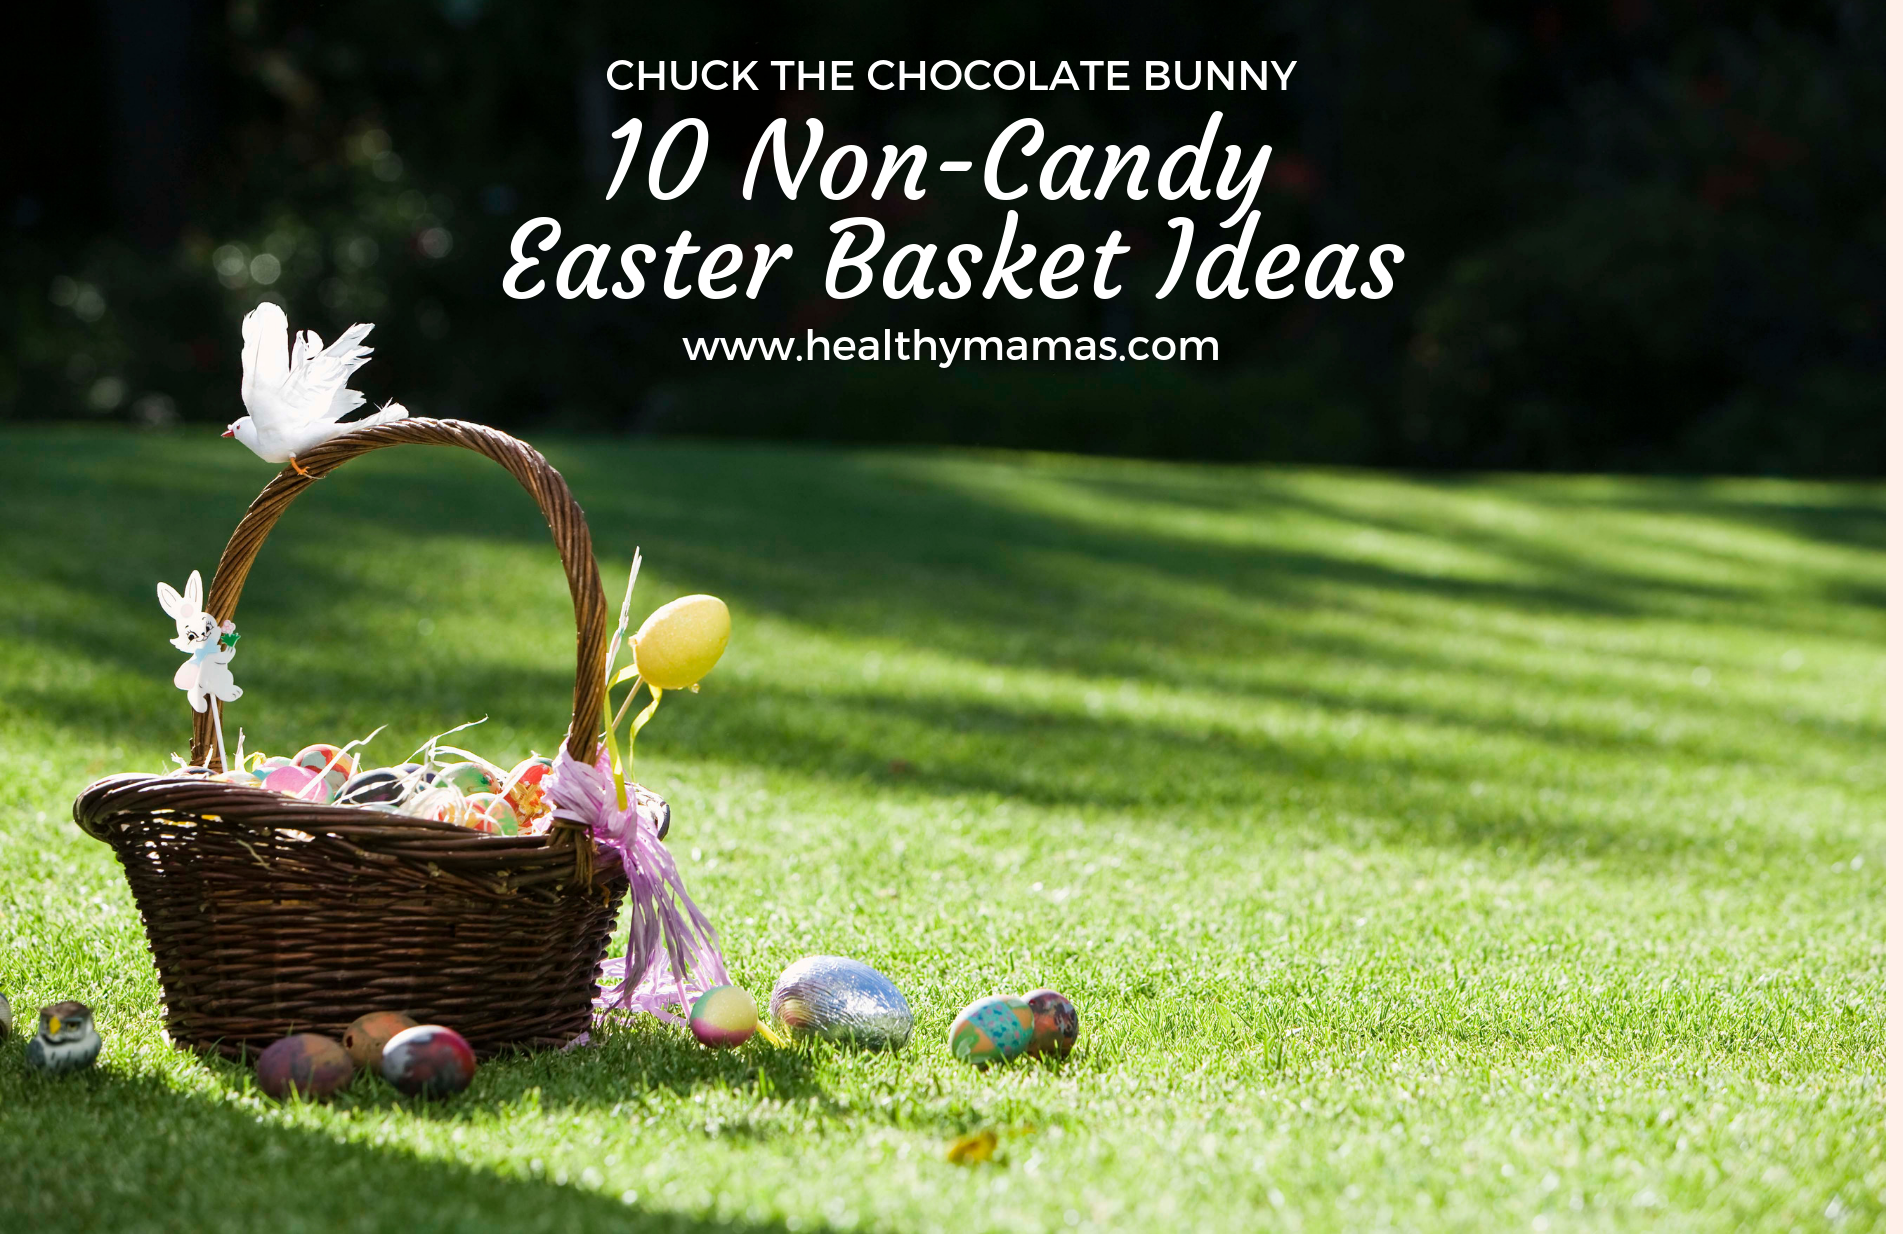 Chuck the Chocolate Bunny: 10 Non-Candy Easter Basket Ideas